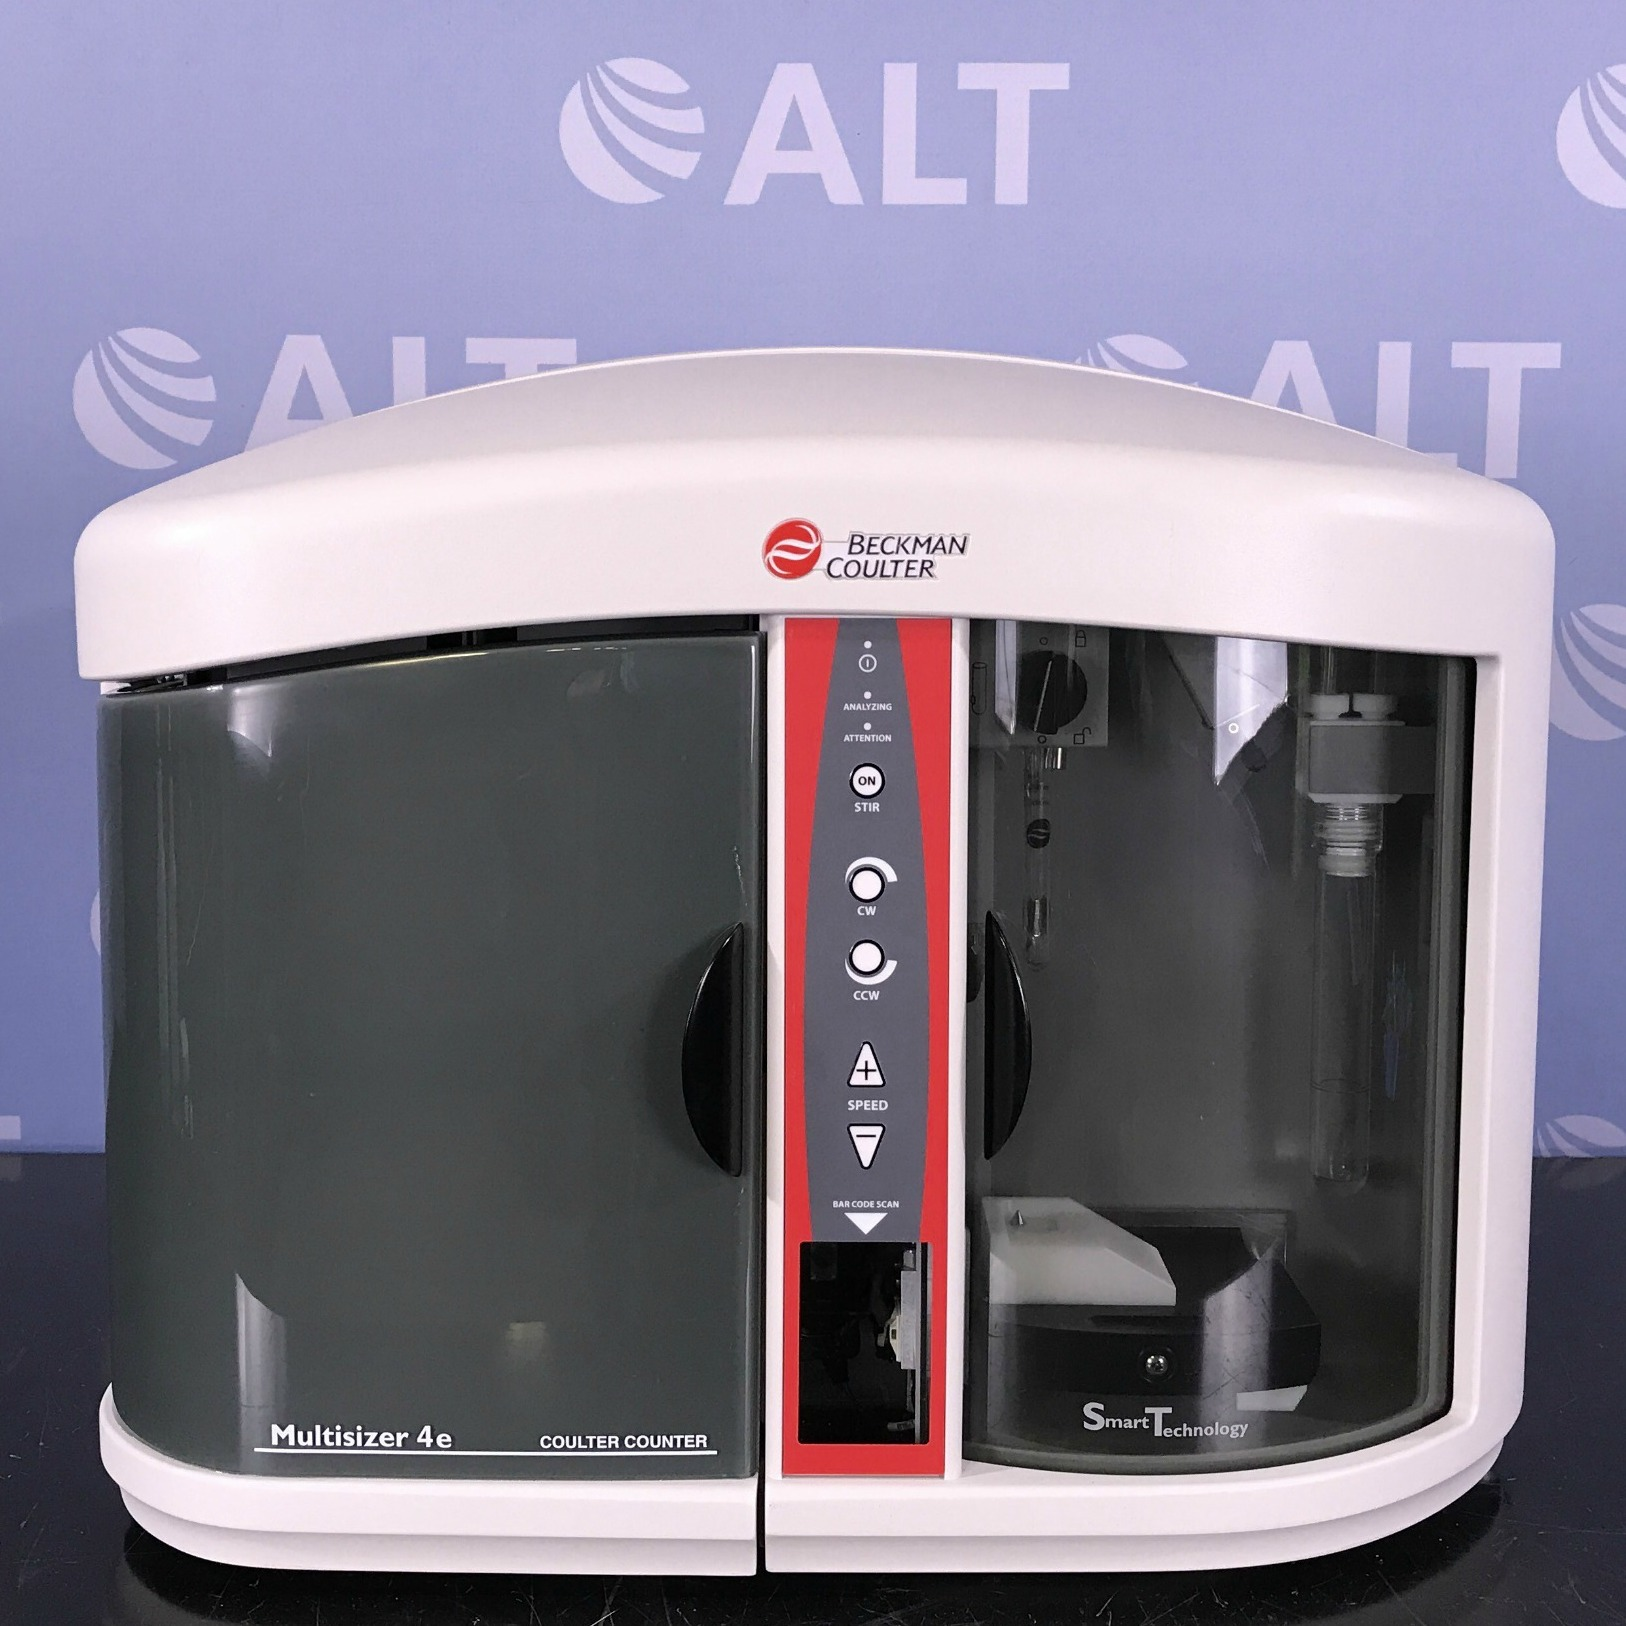 Beckman Coulter Multisizer 4e Coulter Cell Analyzer Image